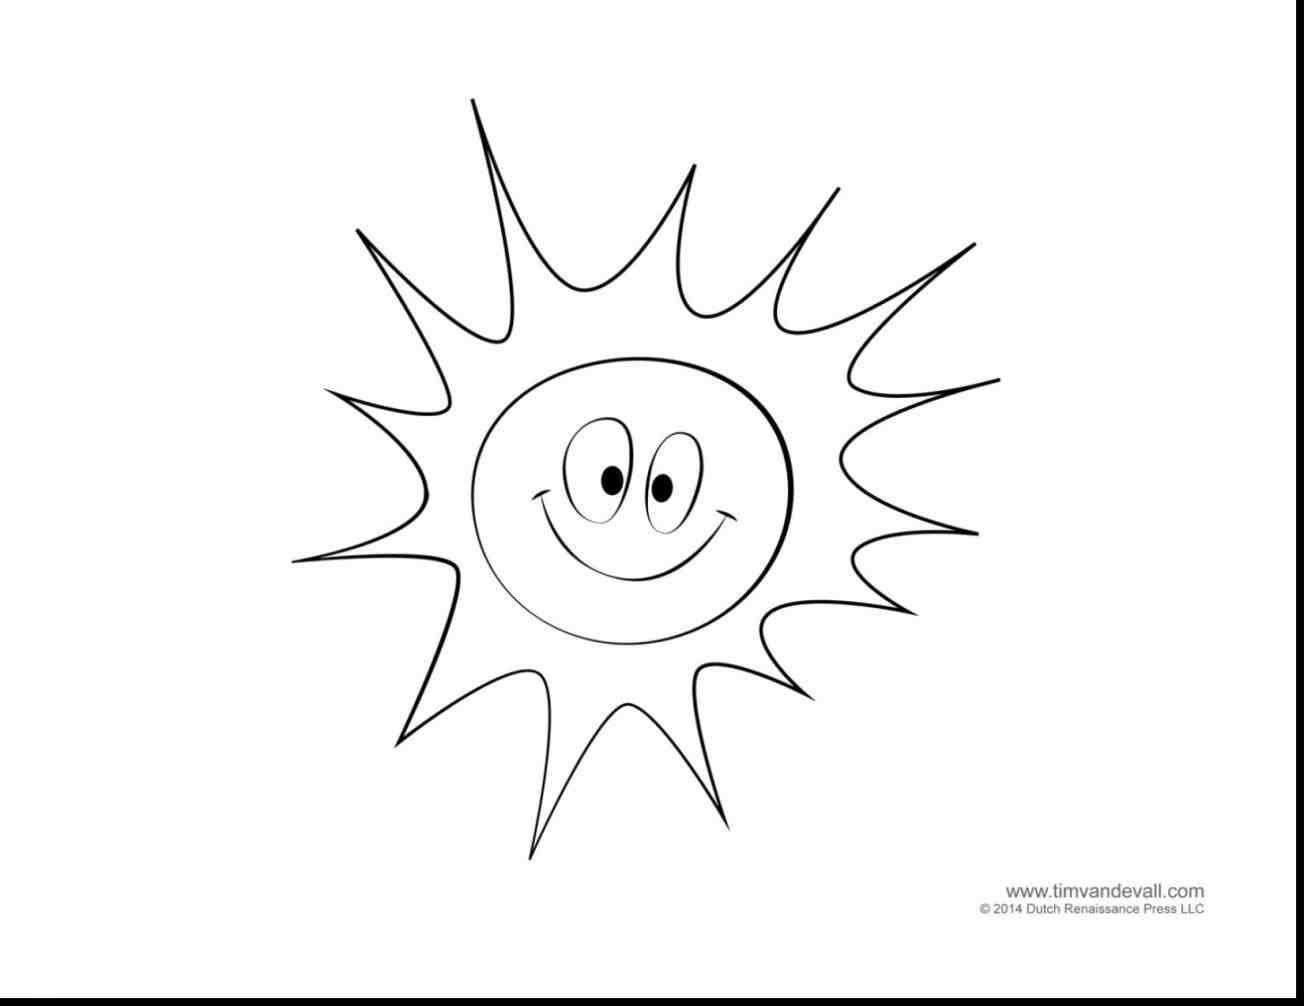 1304x1006 Sun Coloring Pages. Sun Colouring Page With Sun Coloring Pages